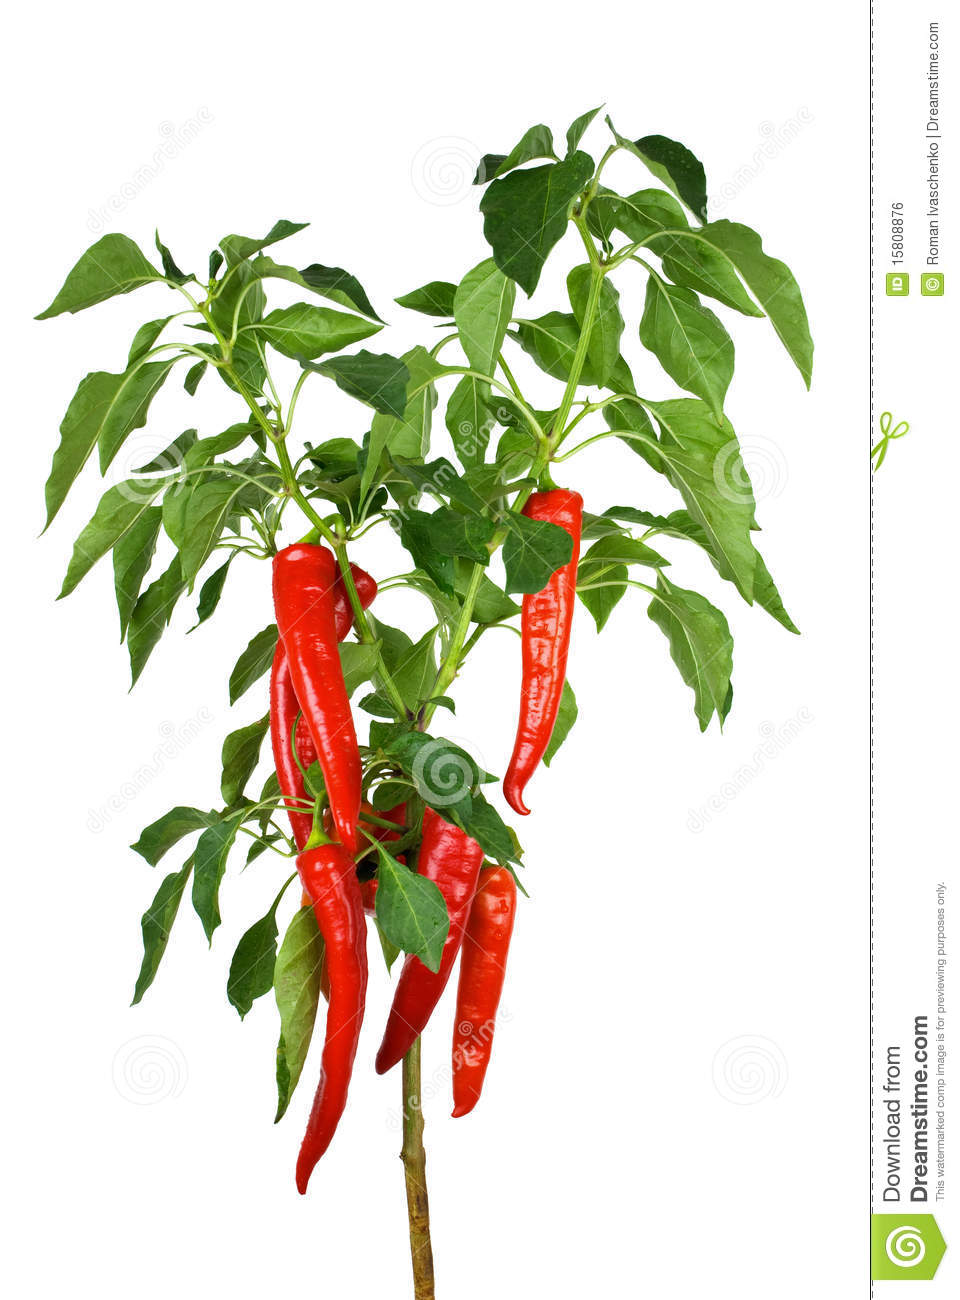 Chili Pepper Plant Royalty Free Stock Image   Image  15808876